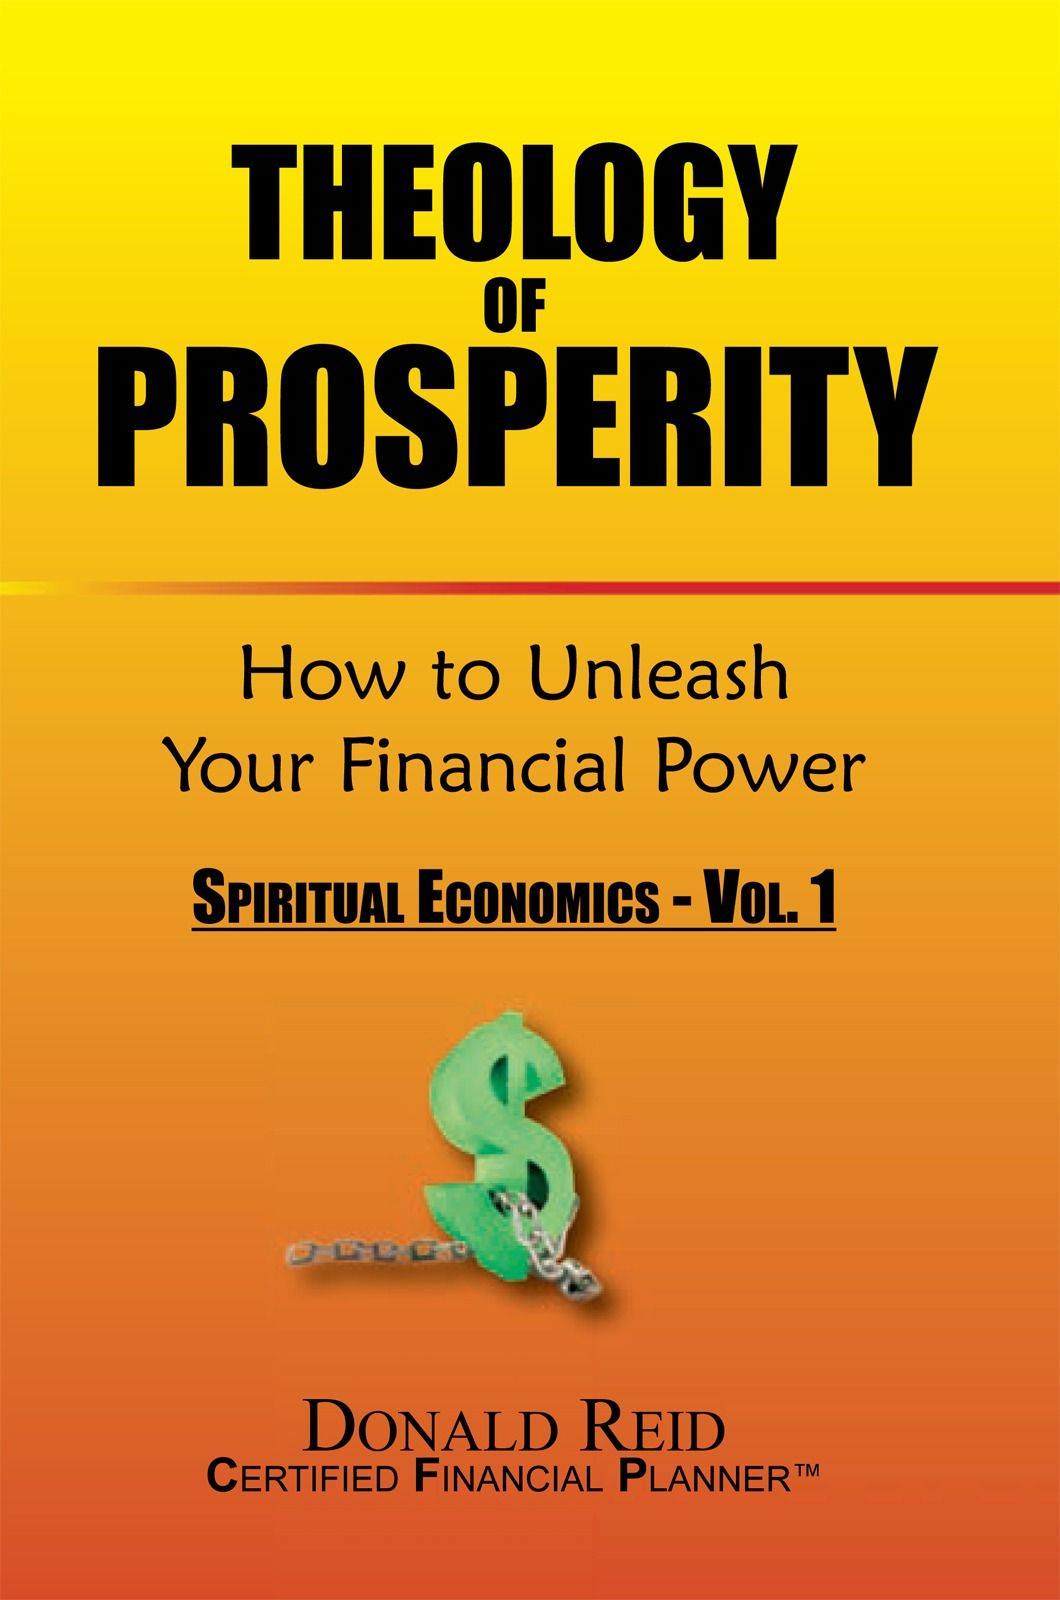 Theology of Prosperity: How to Unleash Your Financial Power